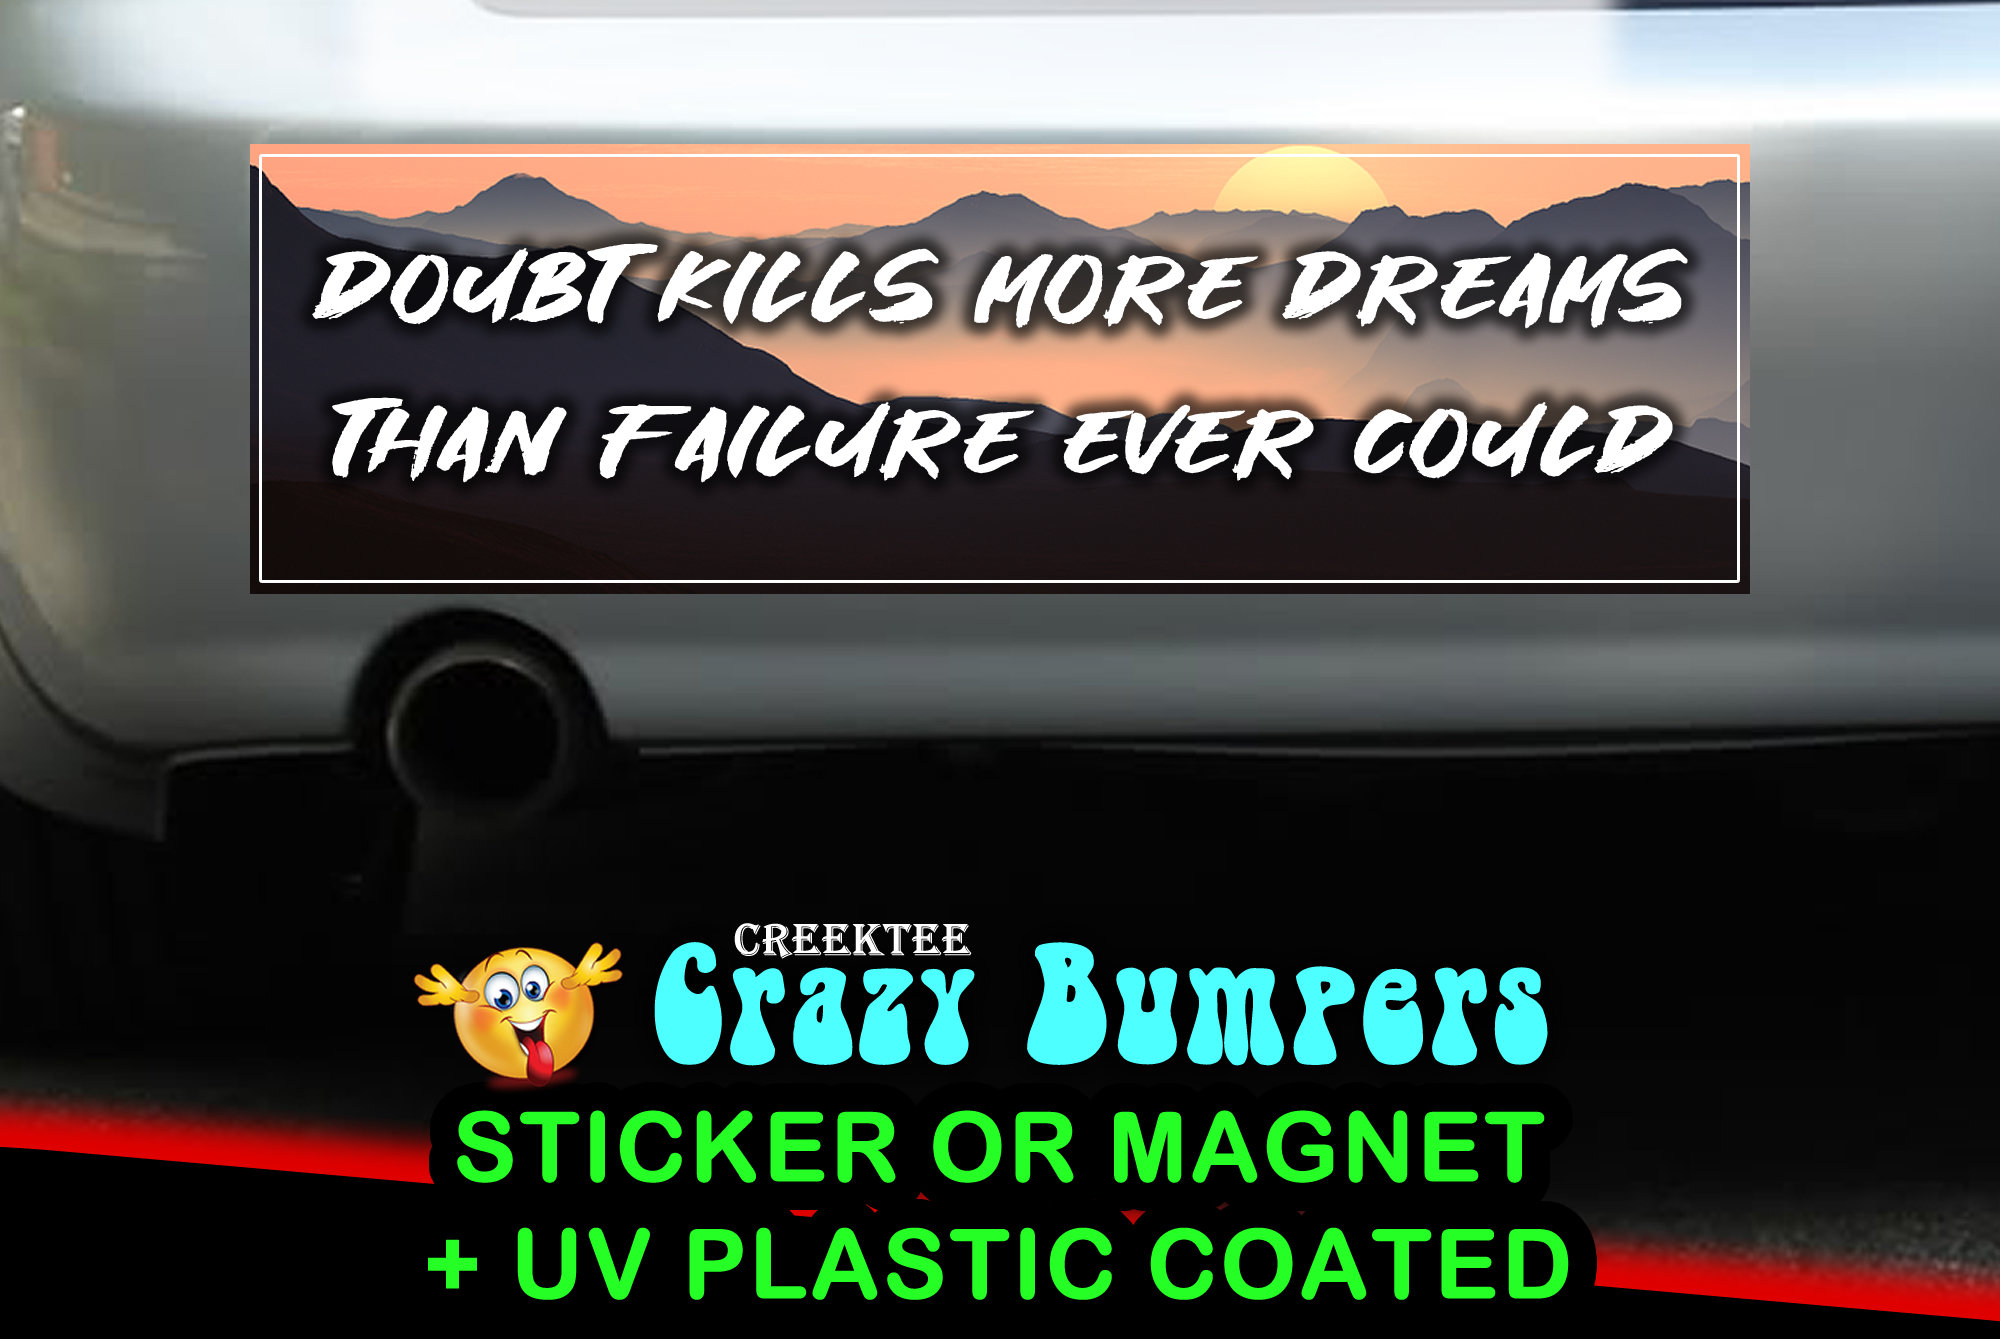 $9.99 - Doubt kills more dreams than failure ever could 10 x 3 Bumper Sticker or Magnetic Bumper Sticker Available